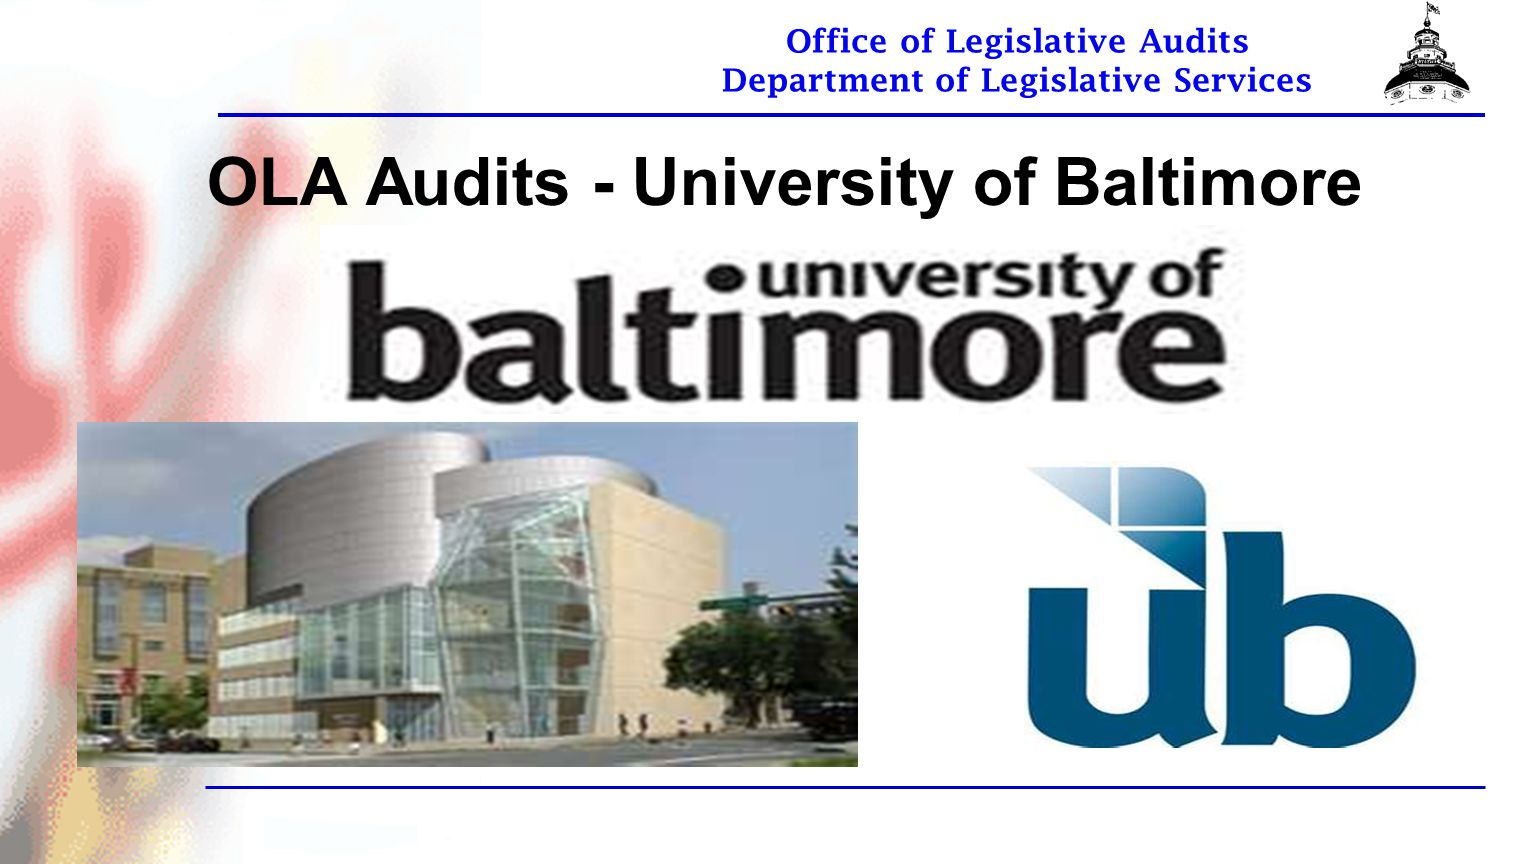 Office of Legislative Audits Department of Legislative Services OLA Audits - University of Baltimore